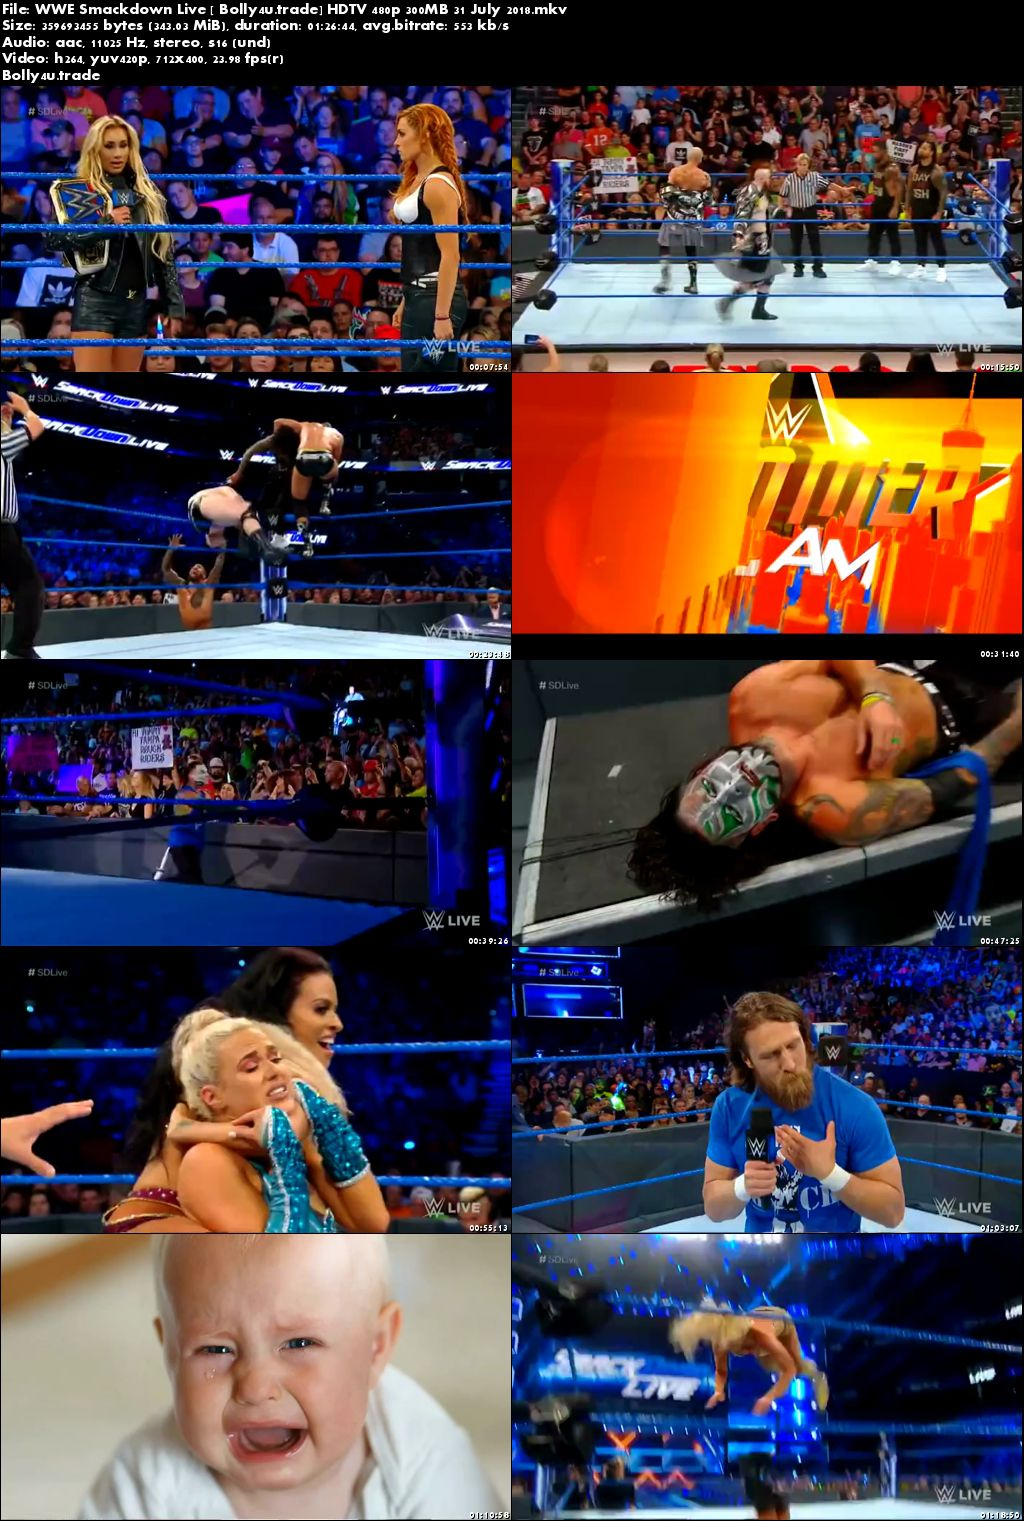 WWE Smackdown Live HDTV 480p 300MB 31 July 2018 Download